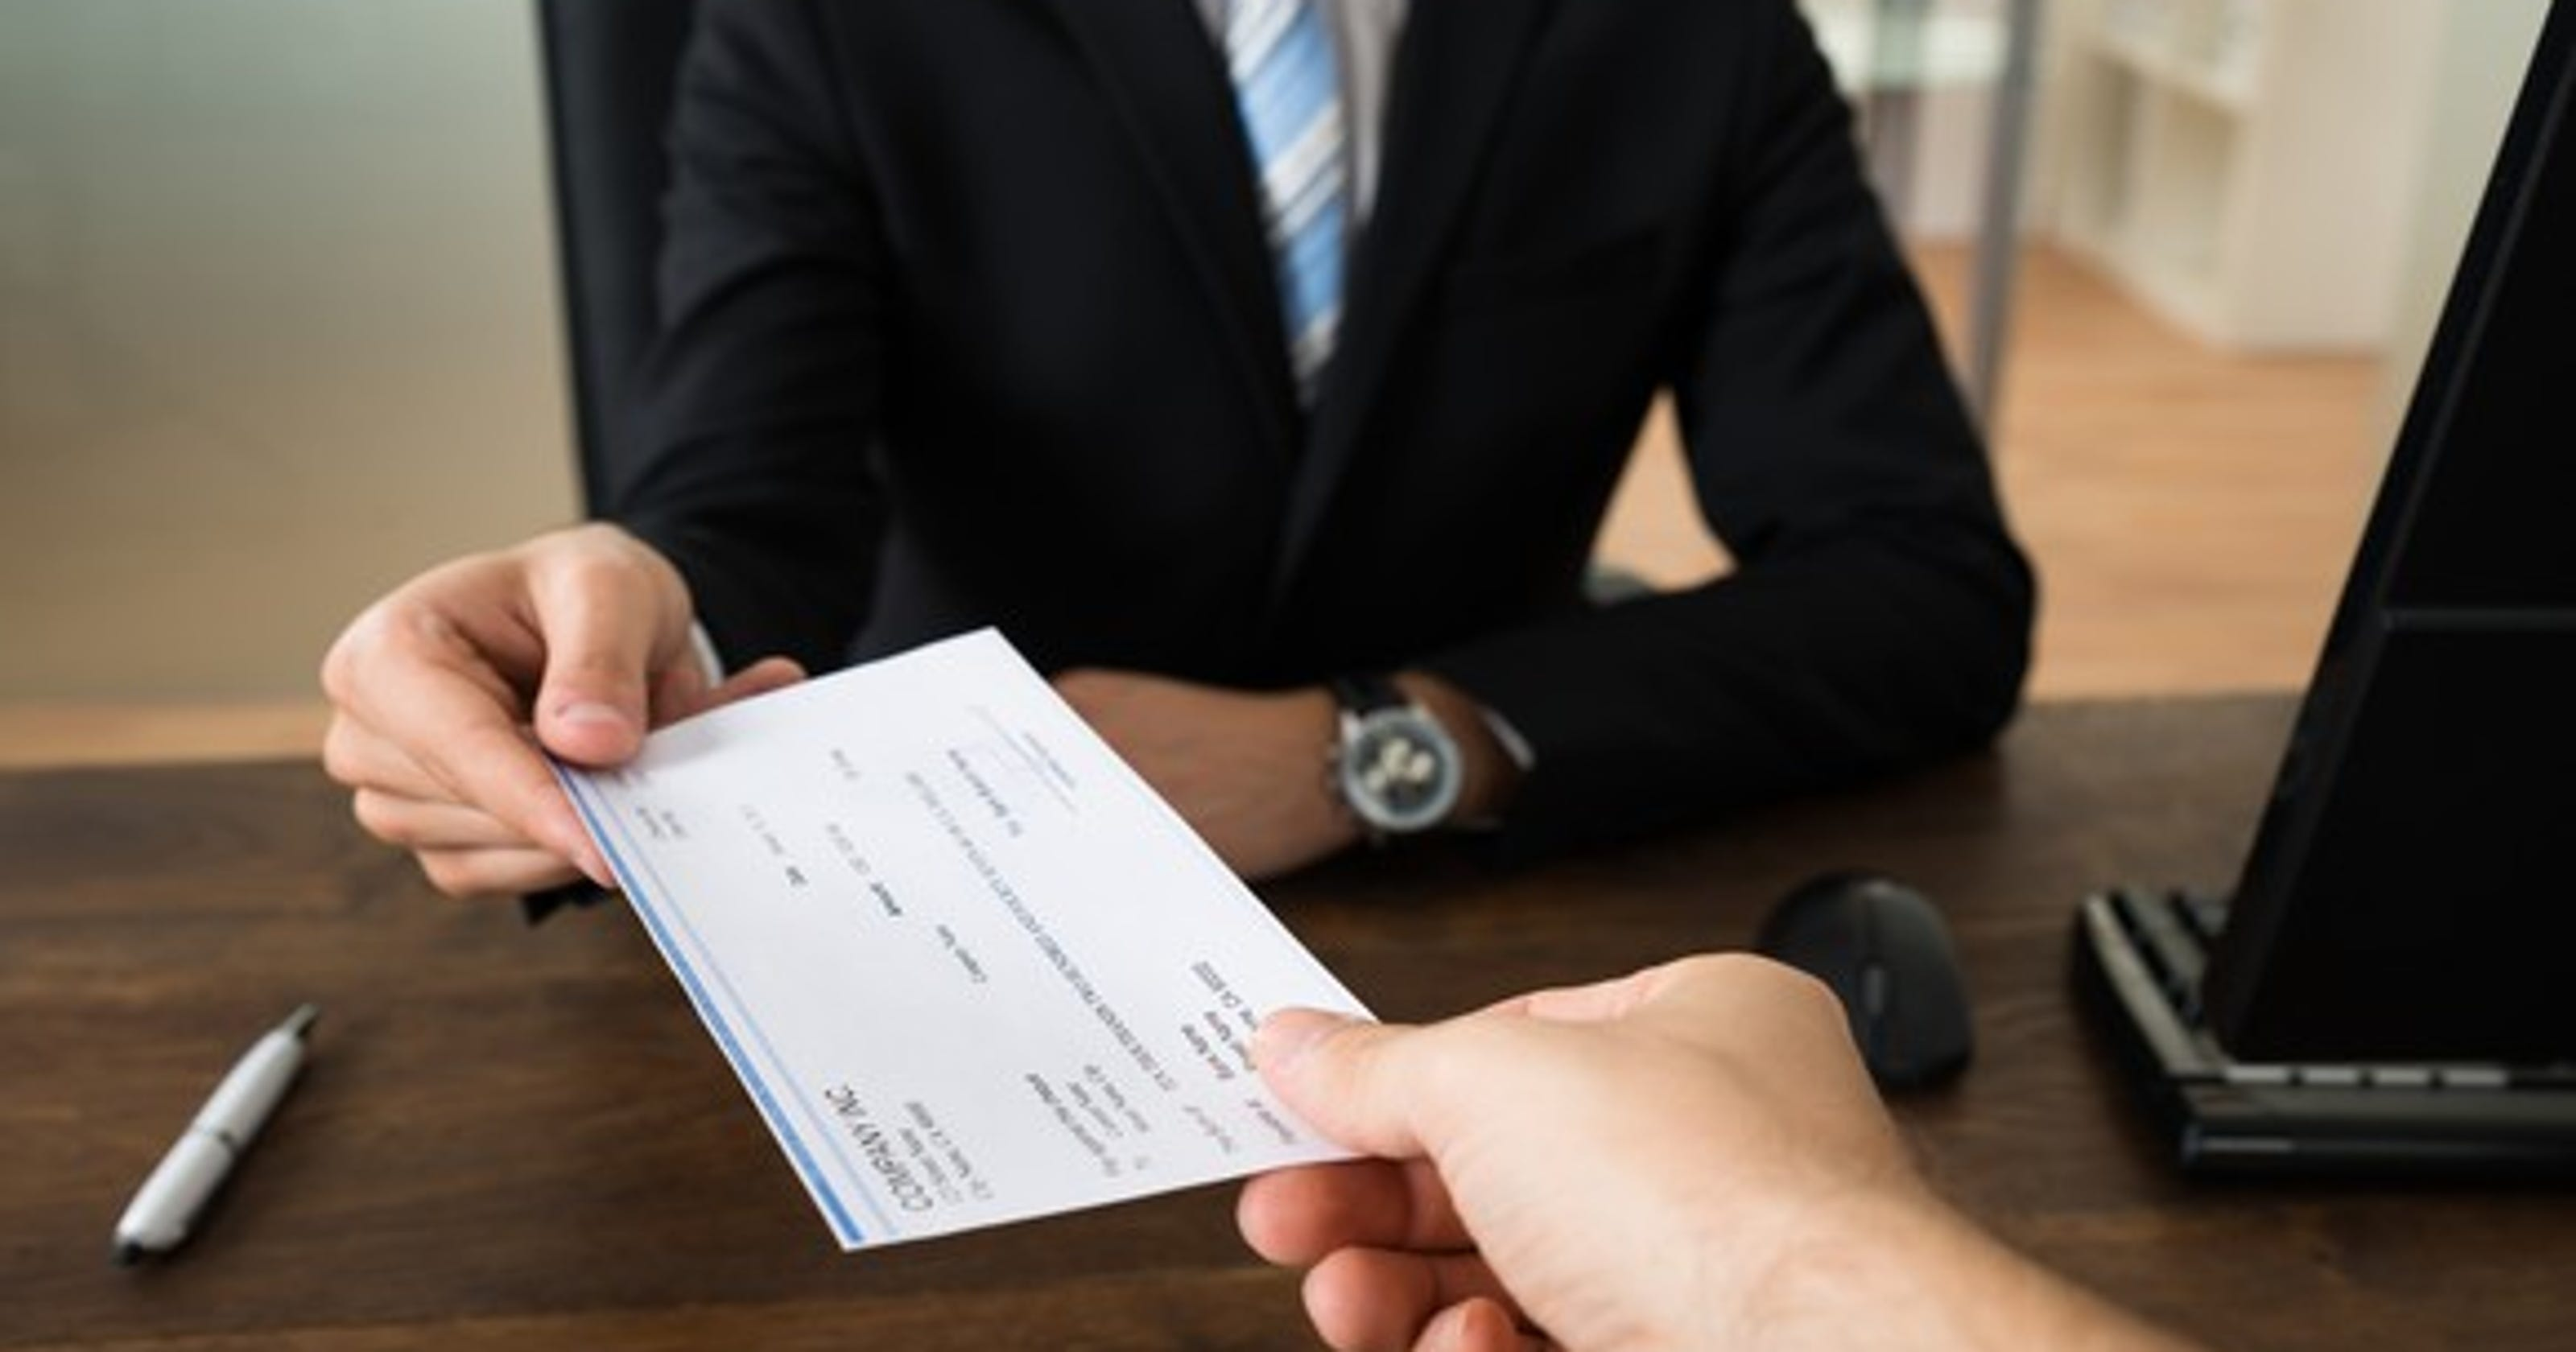 Fake check scam? How to spot and avoid the latest fraud scheme